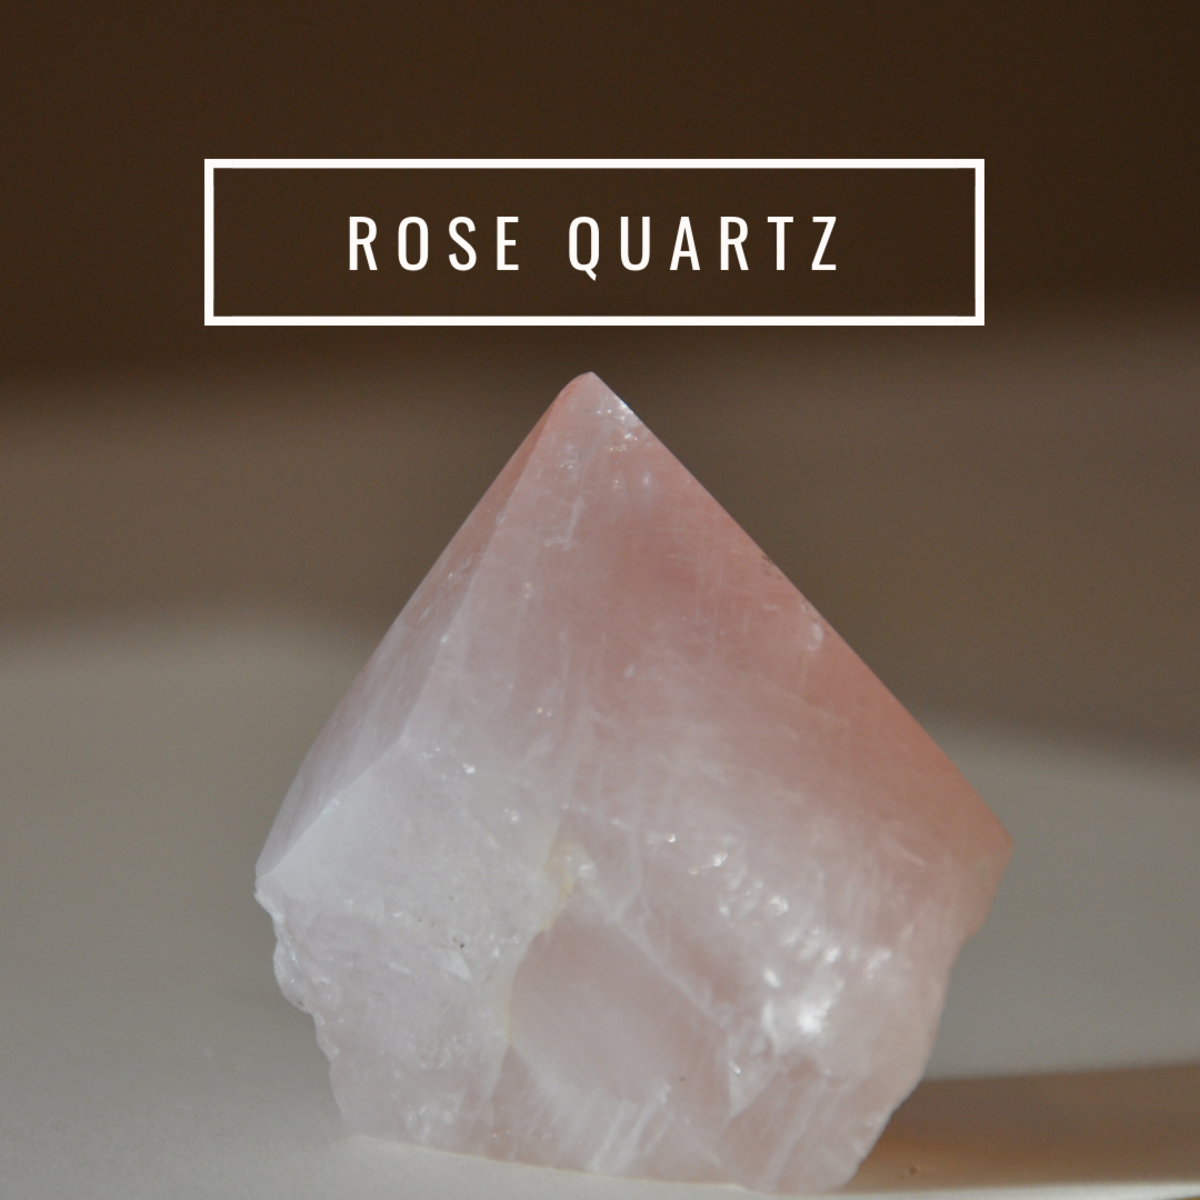 Rose quartz is known by many as the stone of unconditional love.